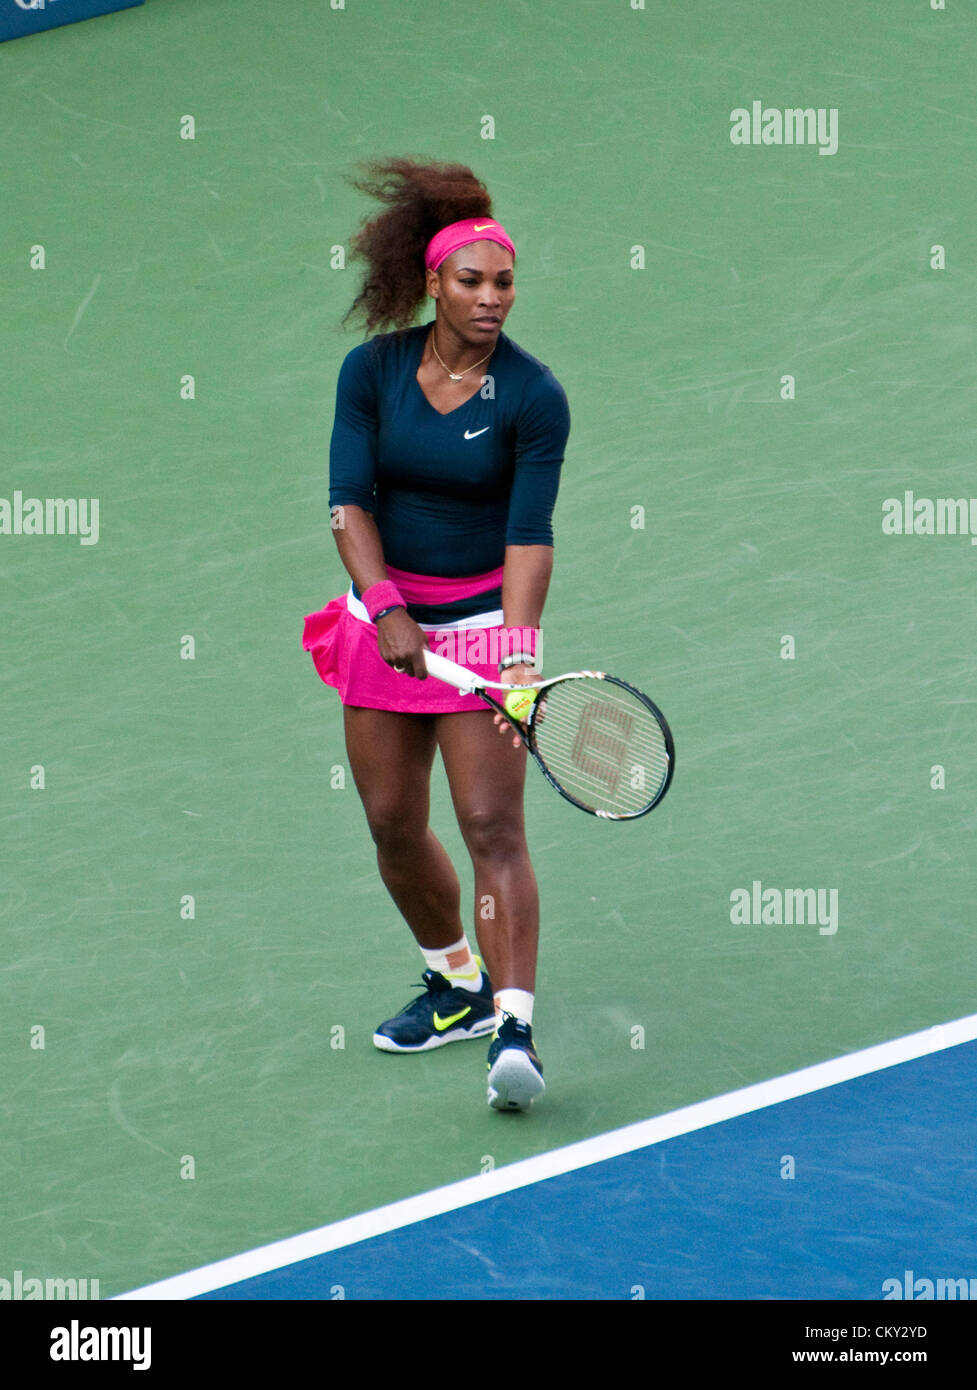 Serena Williams of the USA serving during the women's doubles second round match on Day Five of the 2012 US - Stock Image